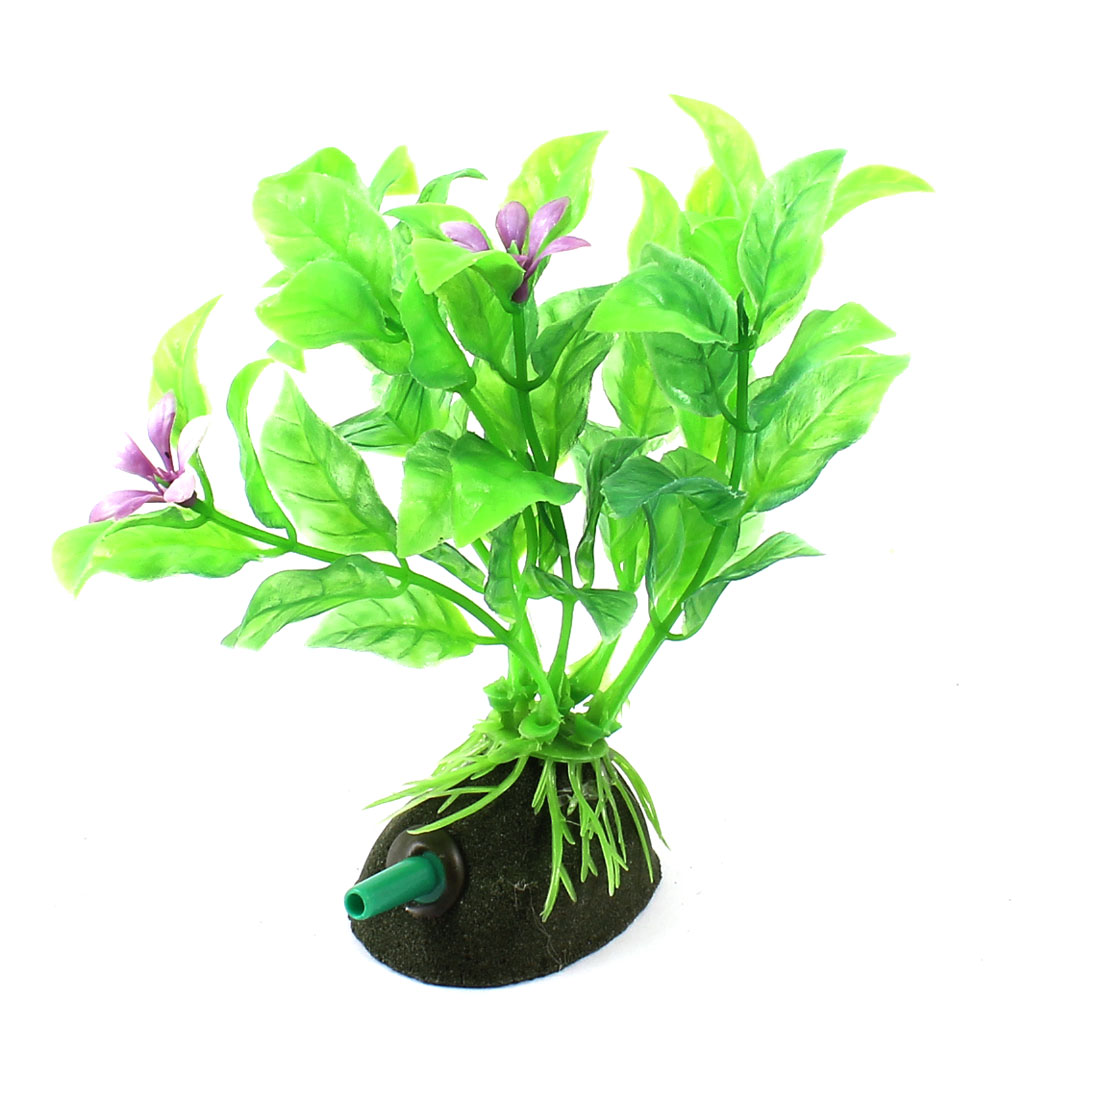 "Aquarium Fish Tank Landscaping Artificial Emulational Underwater Water Plant Grass Ornament Green 4.7"" Height"